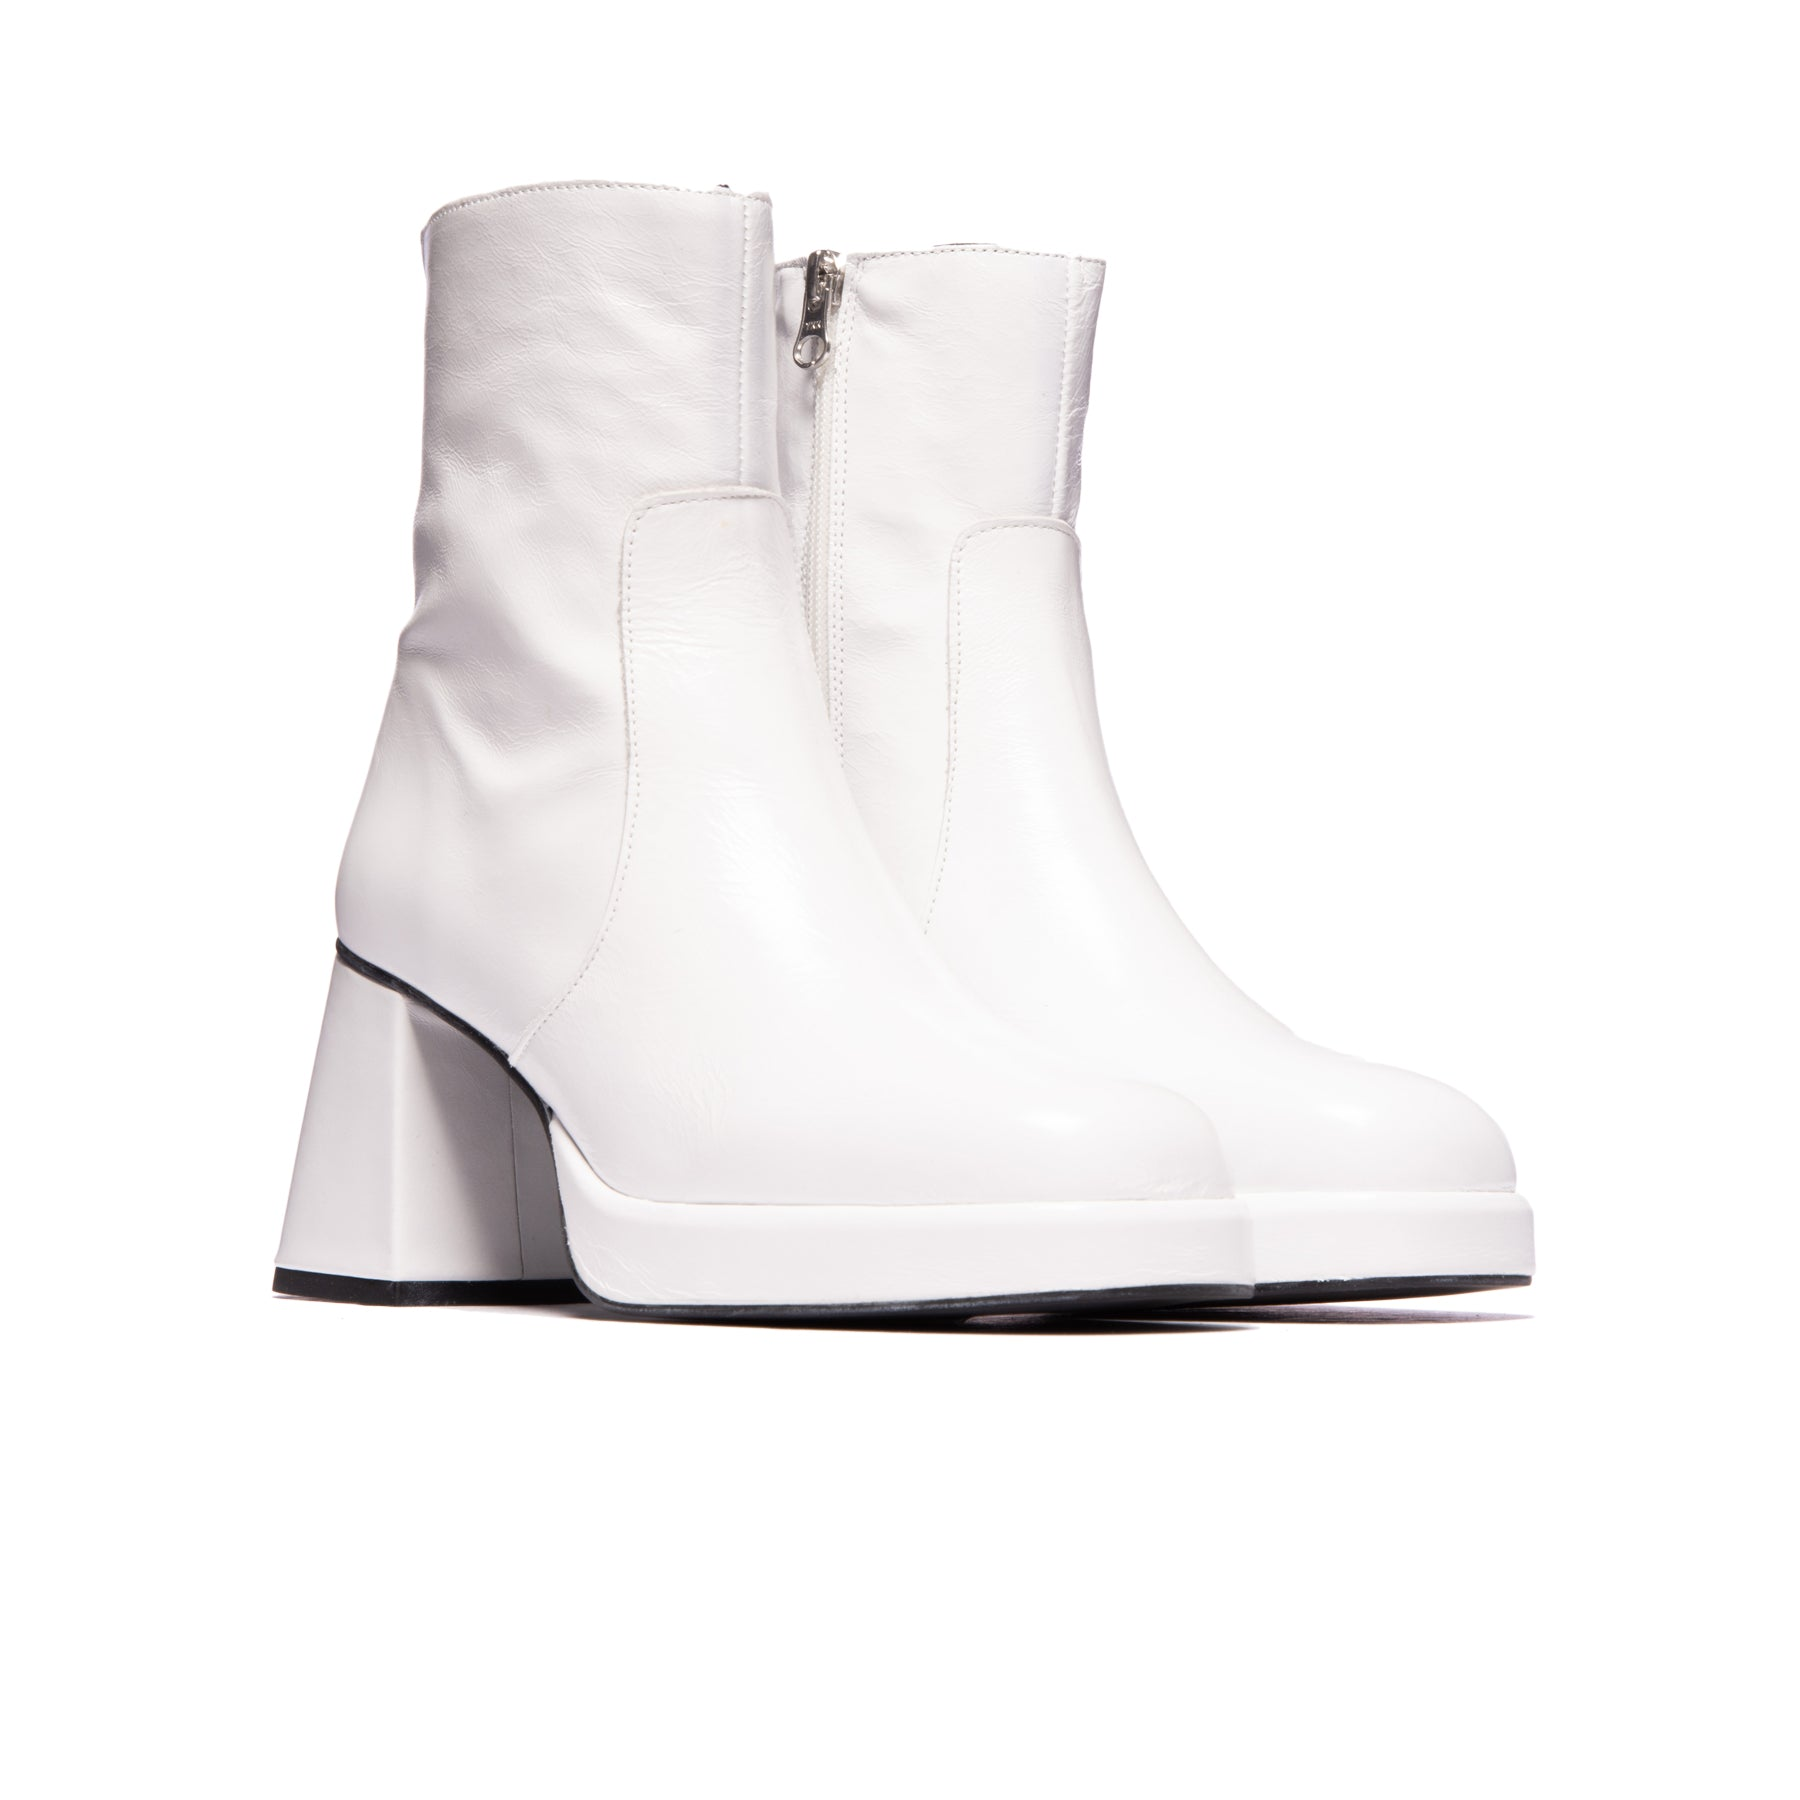 Wexford White Leather